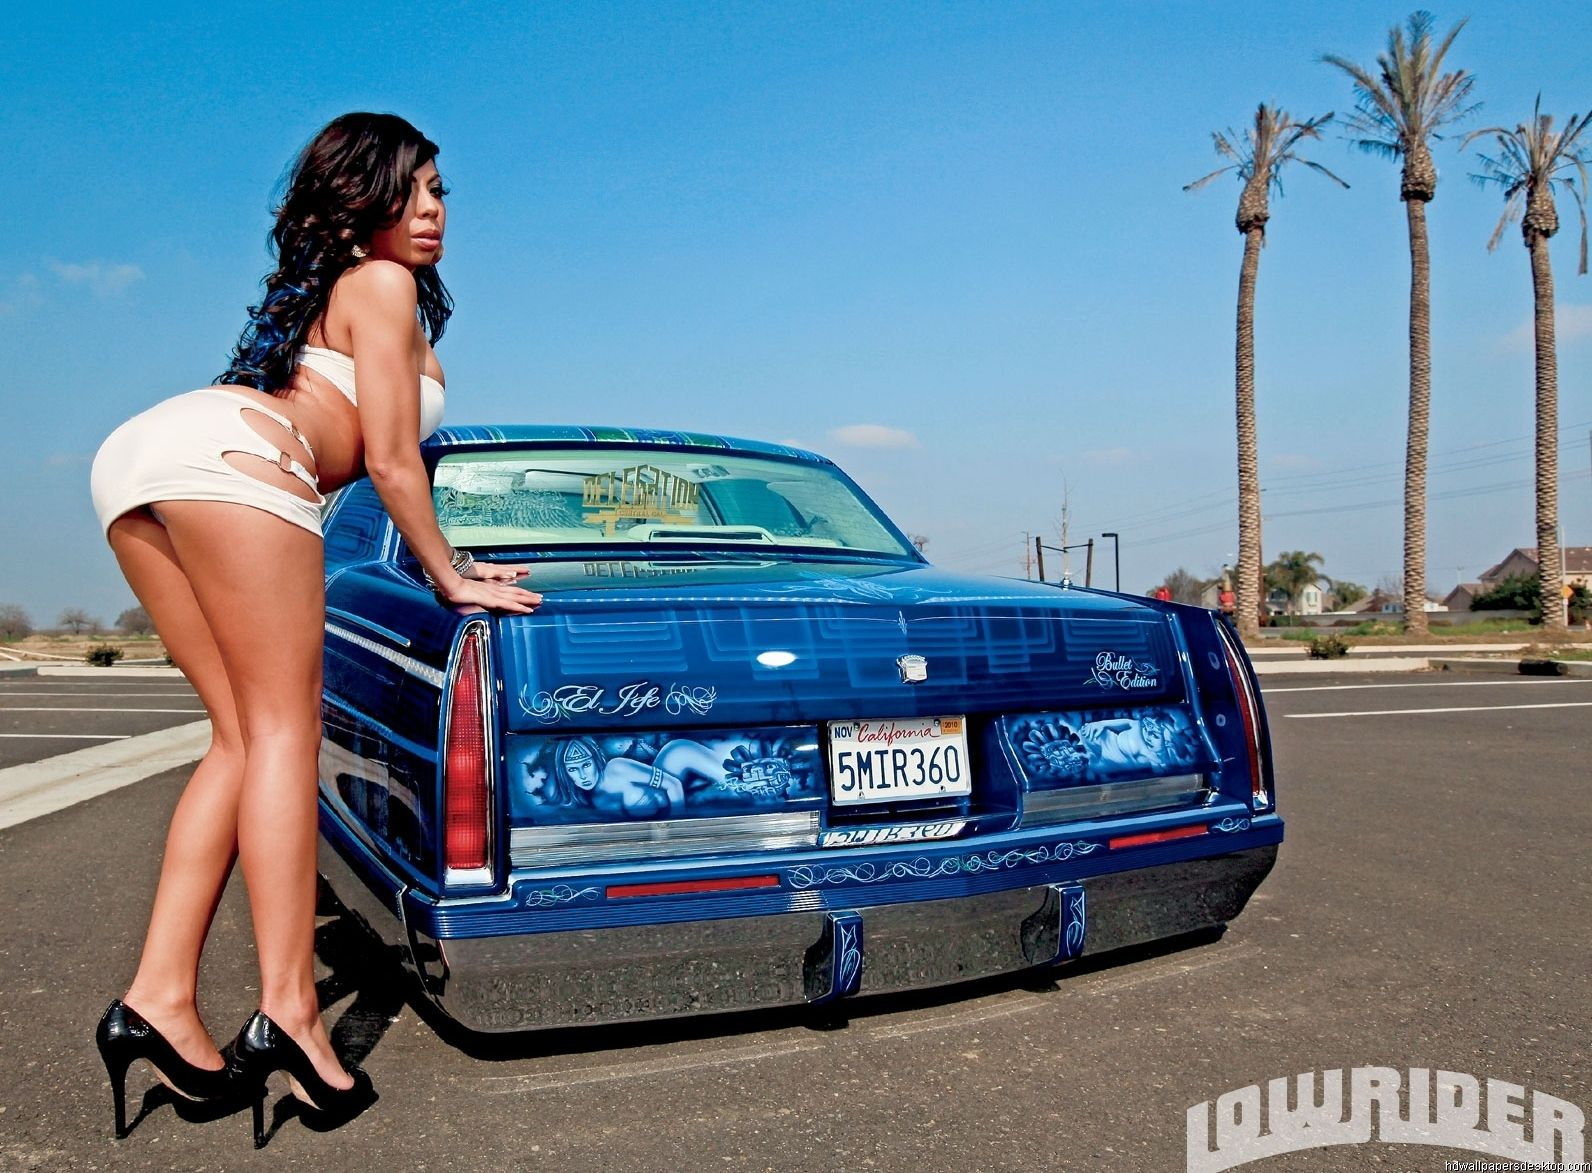 Cars Girls Wallpapers Pixel Wallpaper Encrypted Sharon Large Saver Screen HD 1592x1173 Px